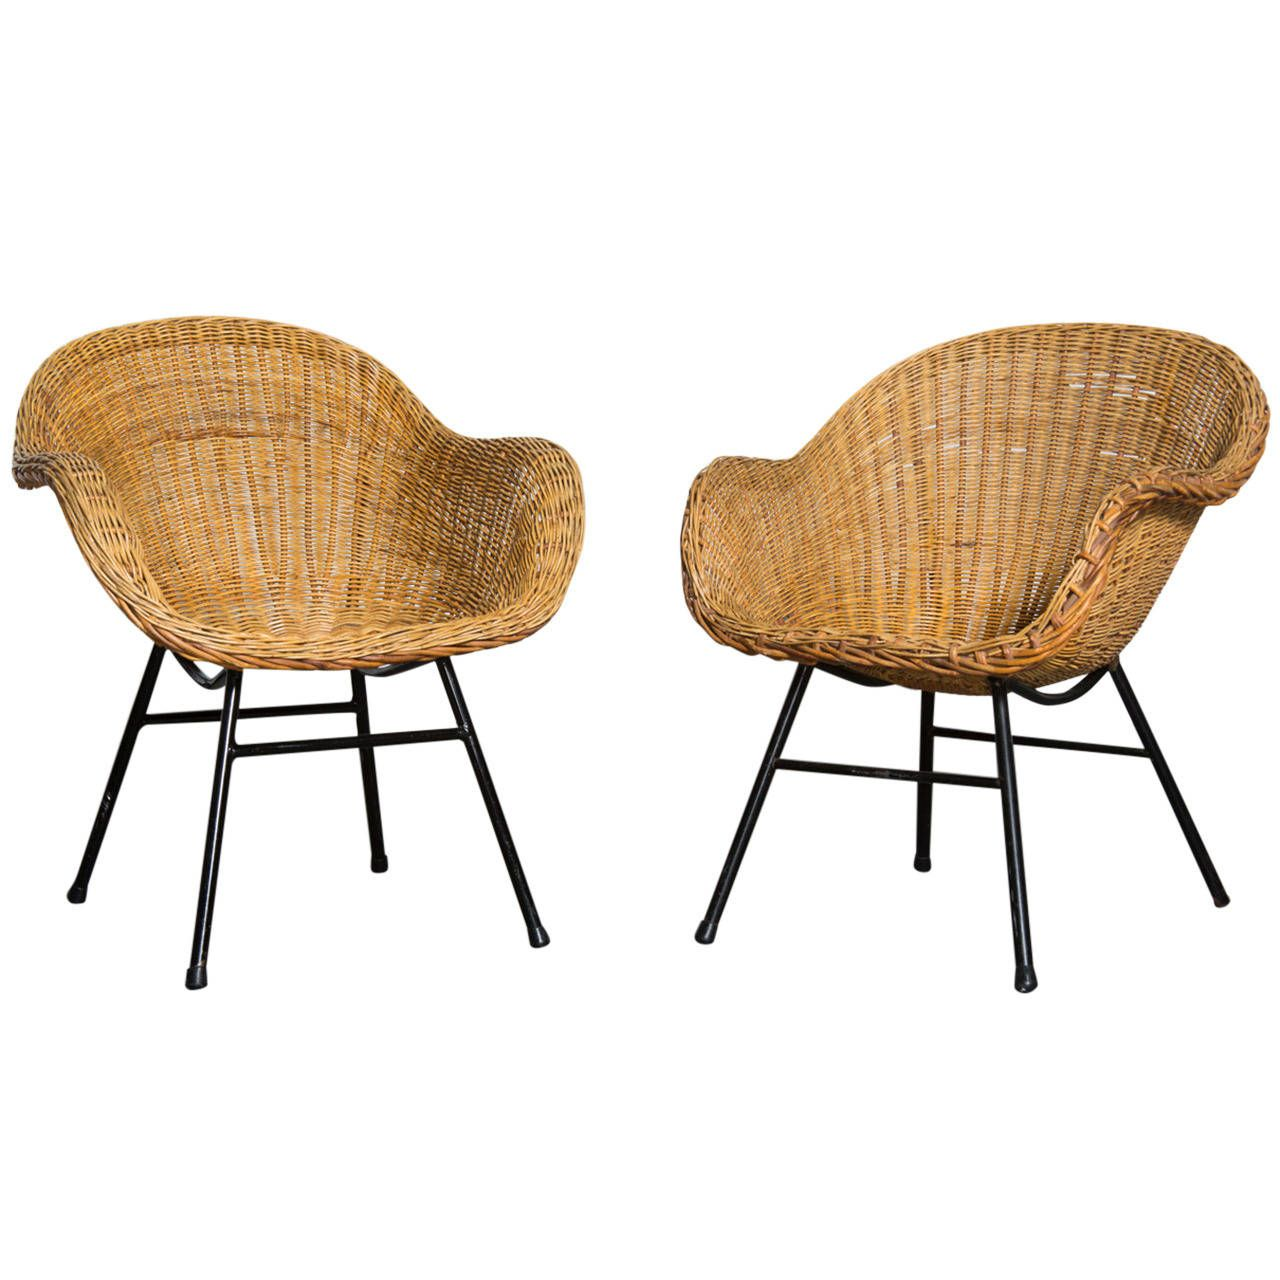 Pair Of Jacques Adnet Style Woven Rattan Chairs